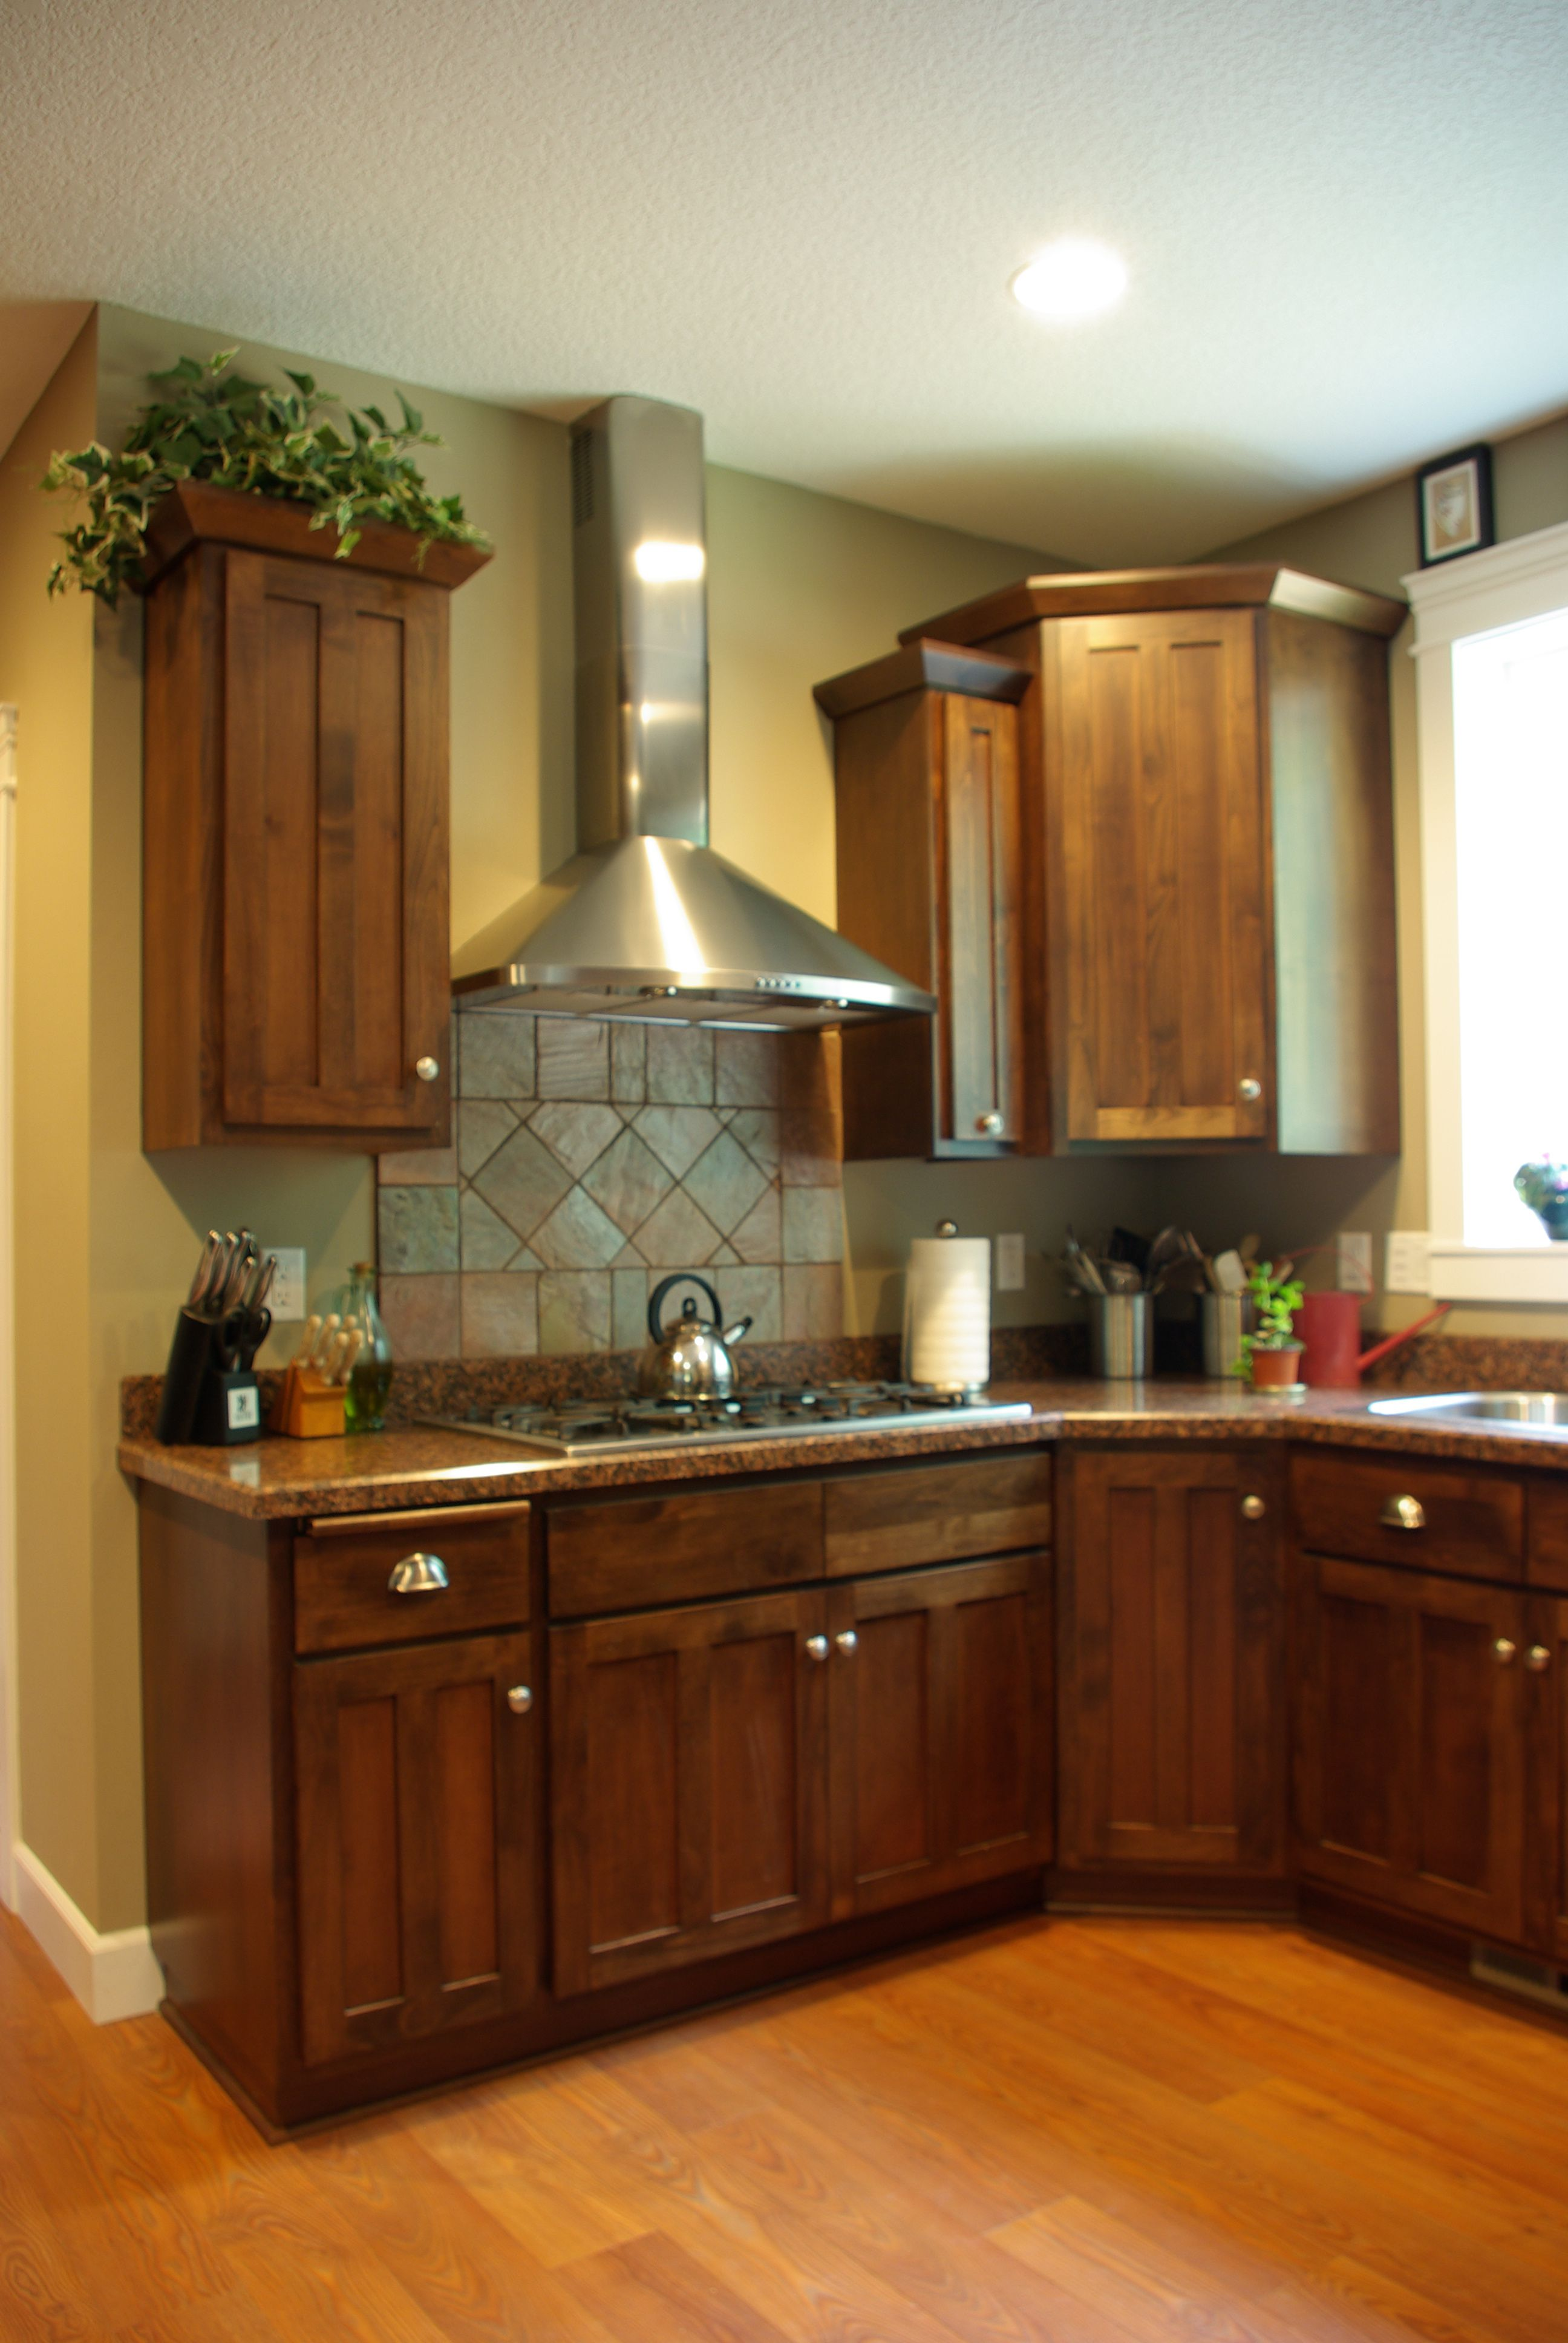 kitchen wow looks a lot like my new kitchen similar lay out and